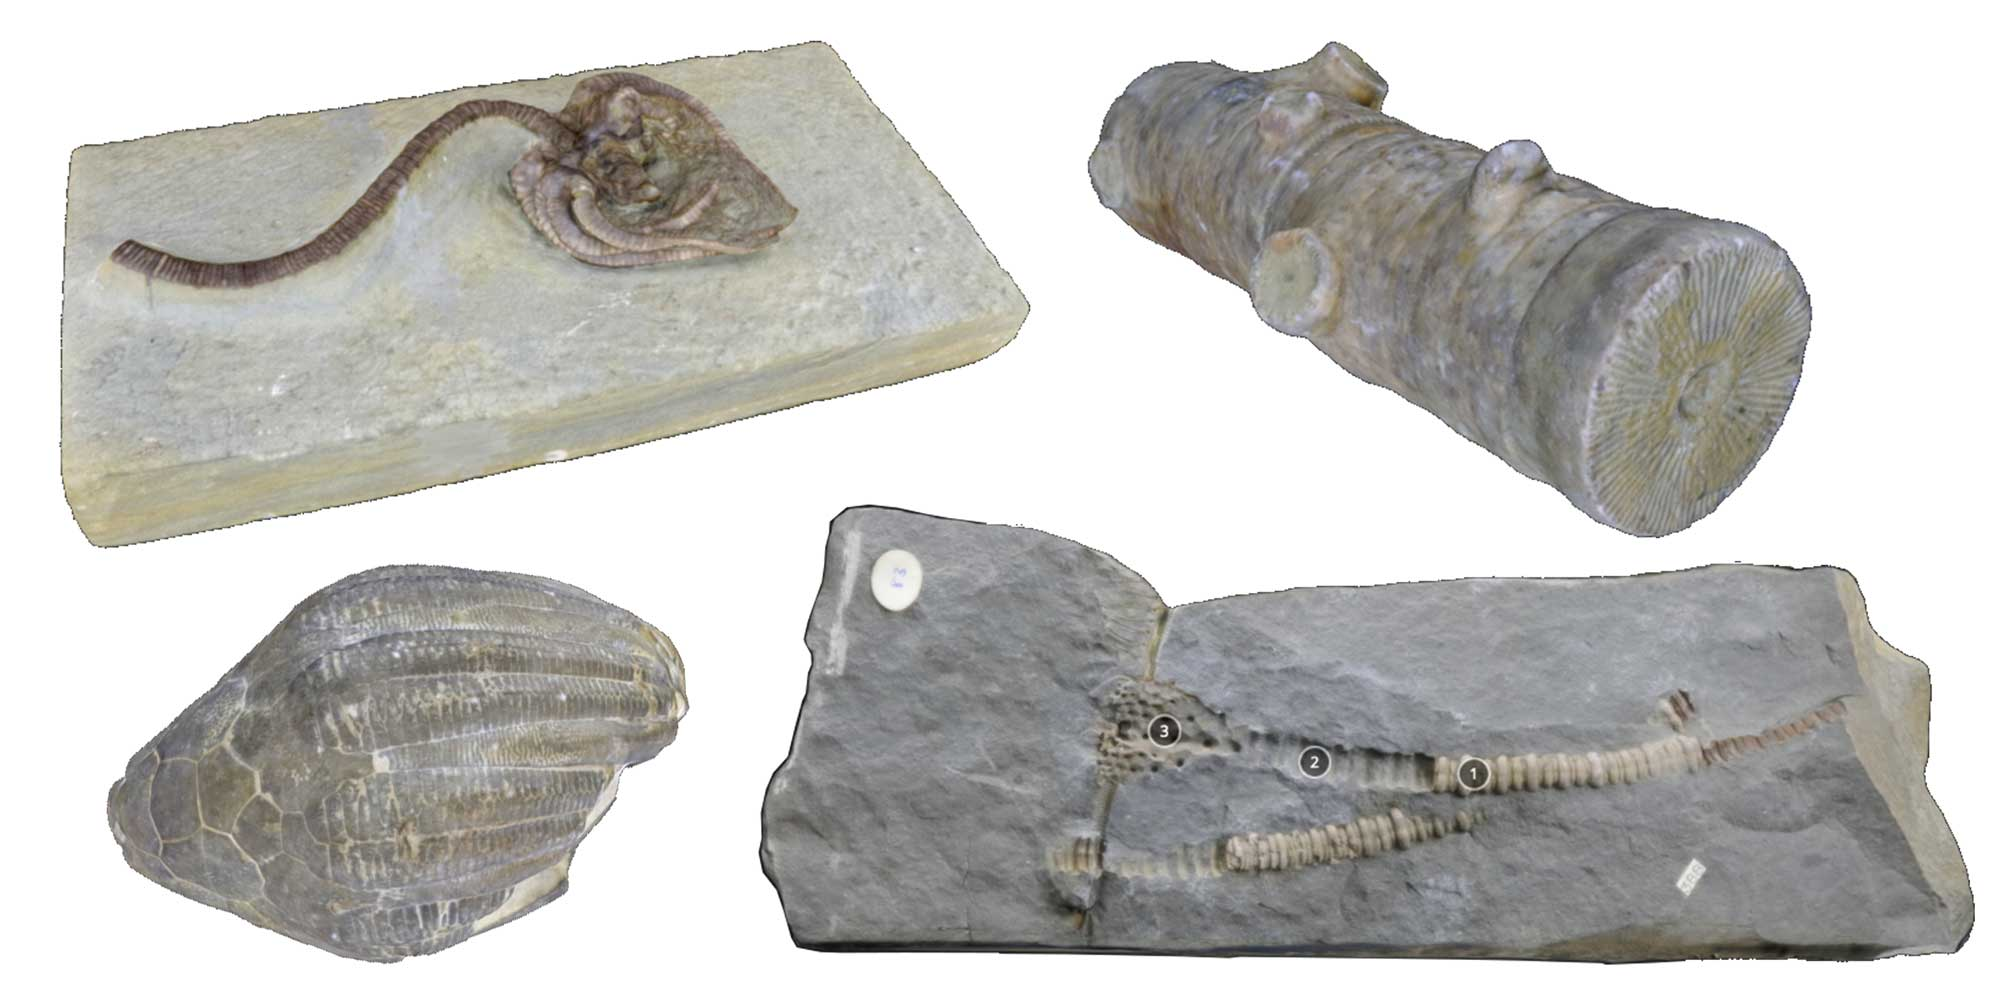 Images of crinoid fossils.